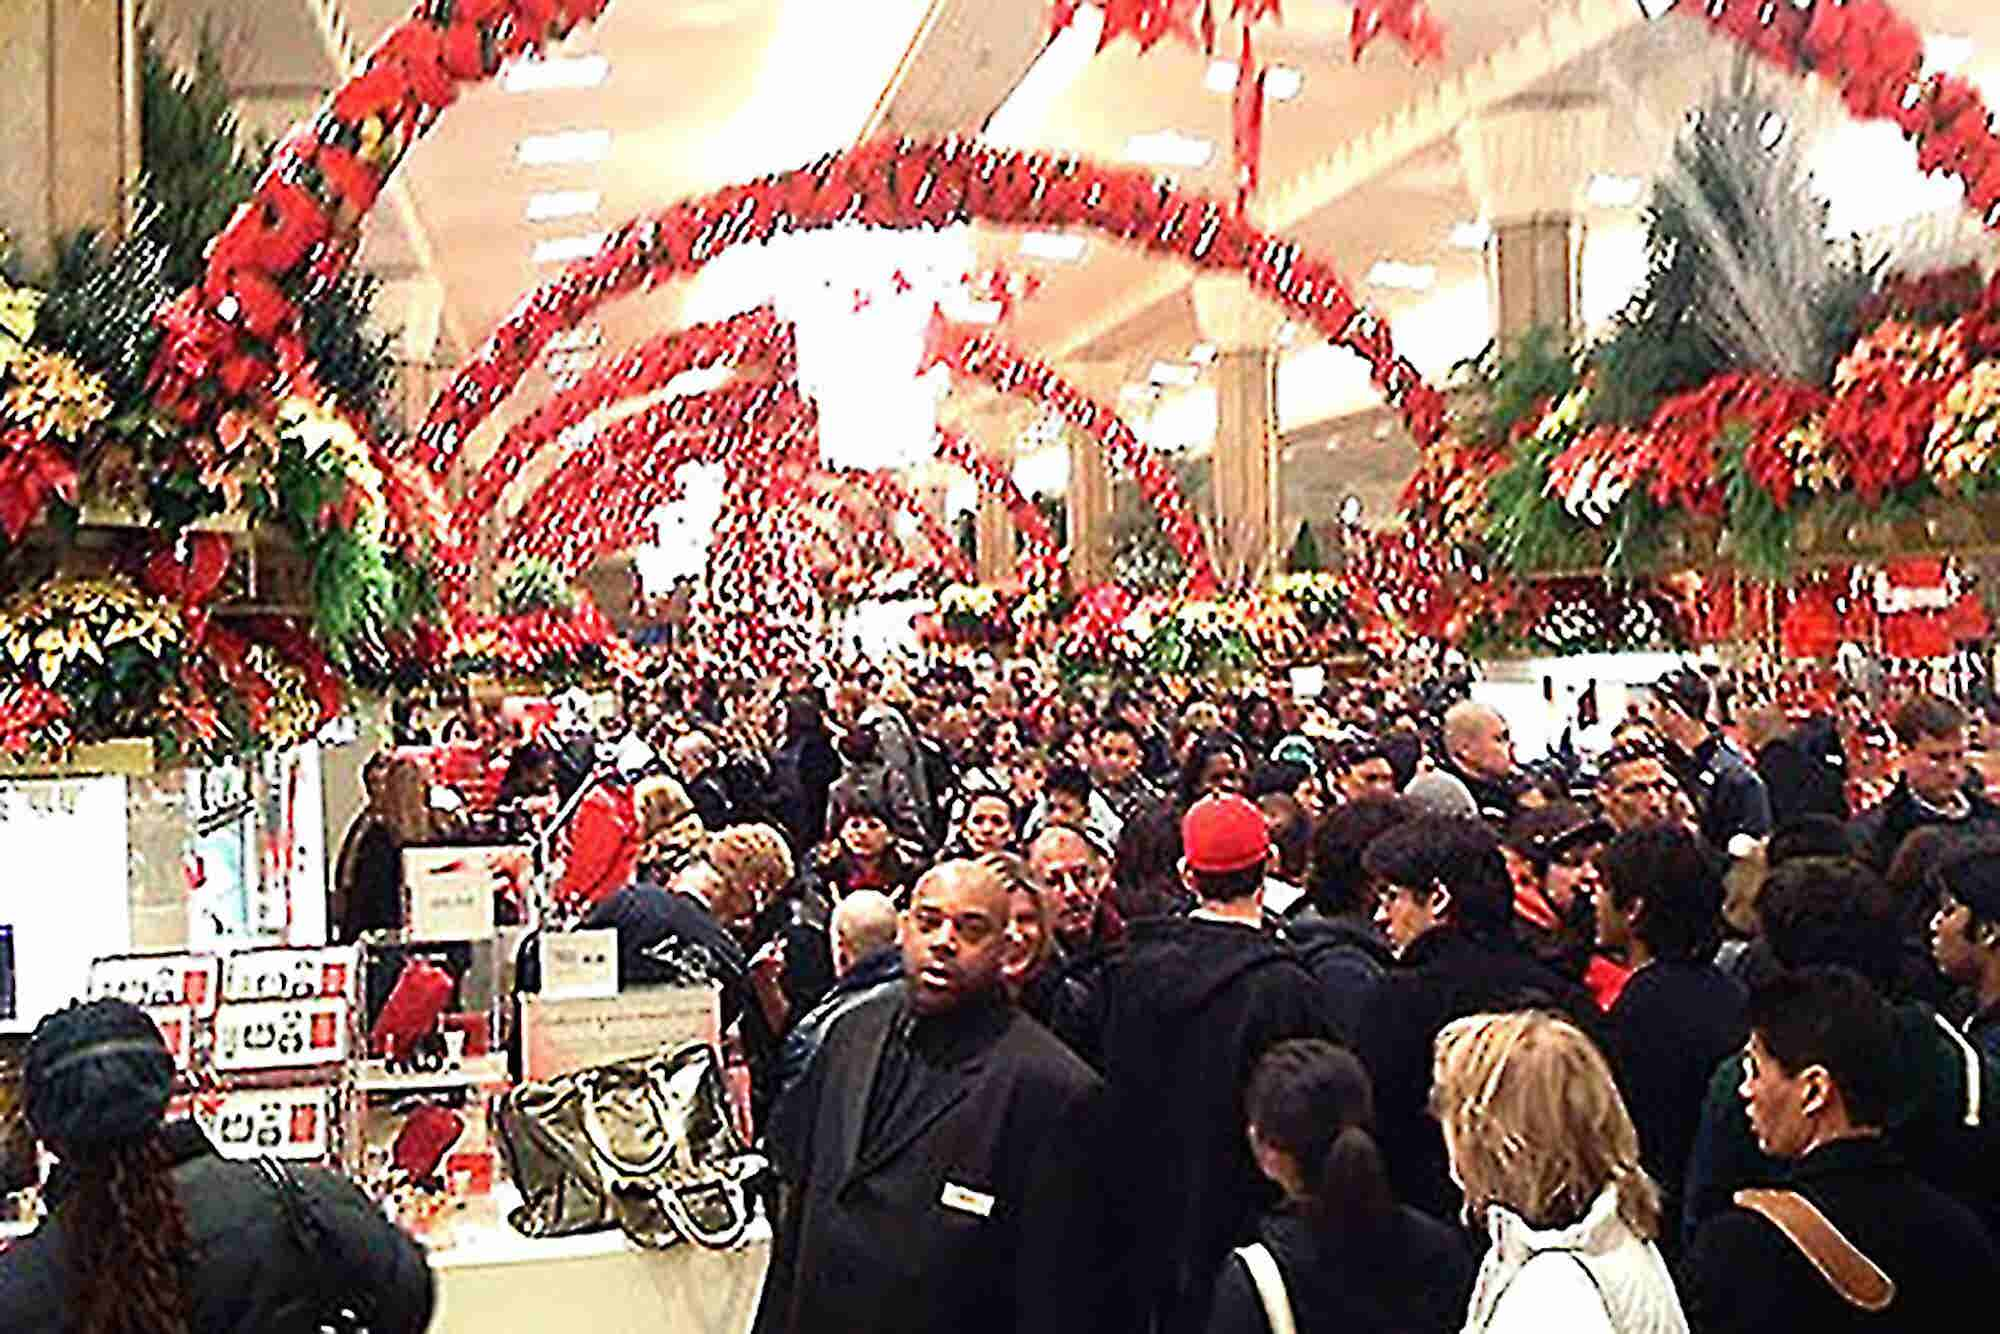 5 Easy Ways to Handle Holiday Crowds